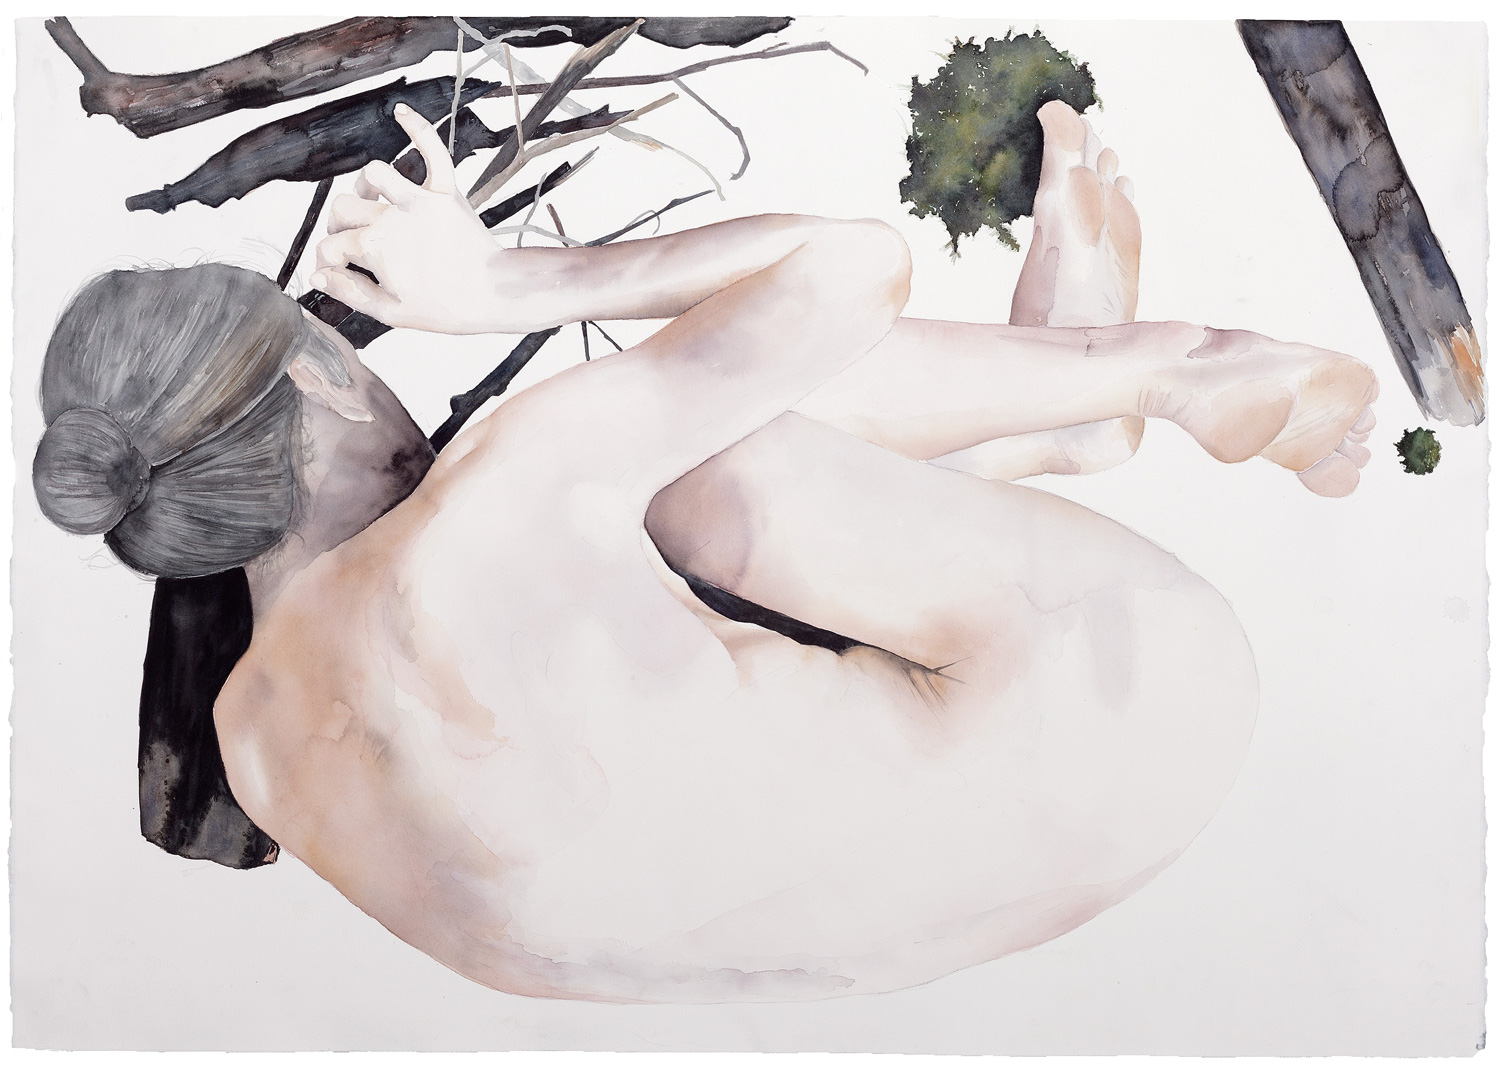 Rituals of transition #2, 2015. Watercolor on paper, 80 x 113 cm